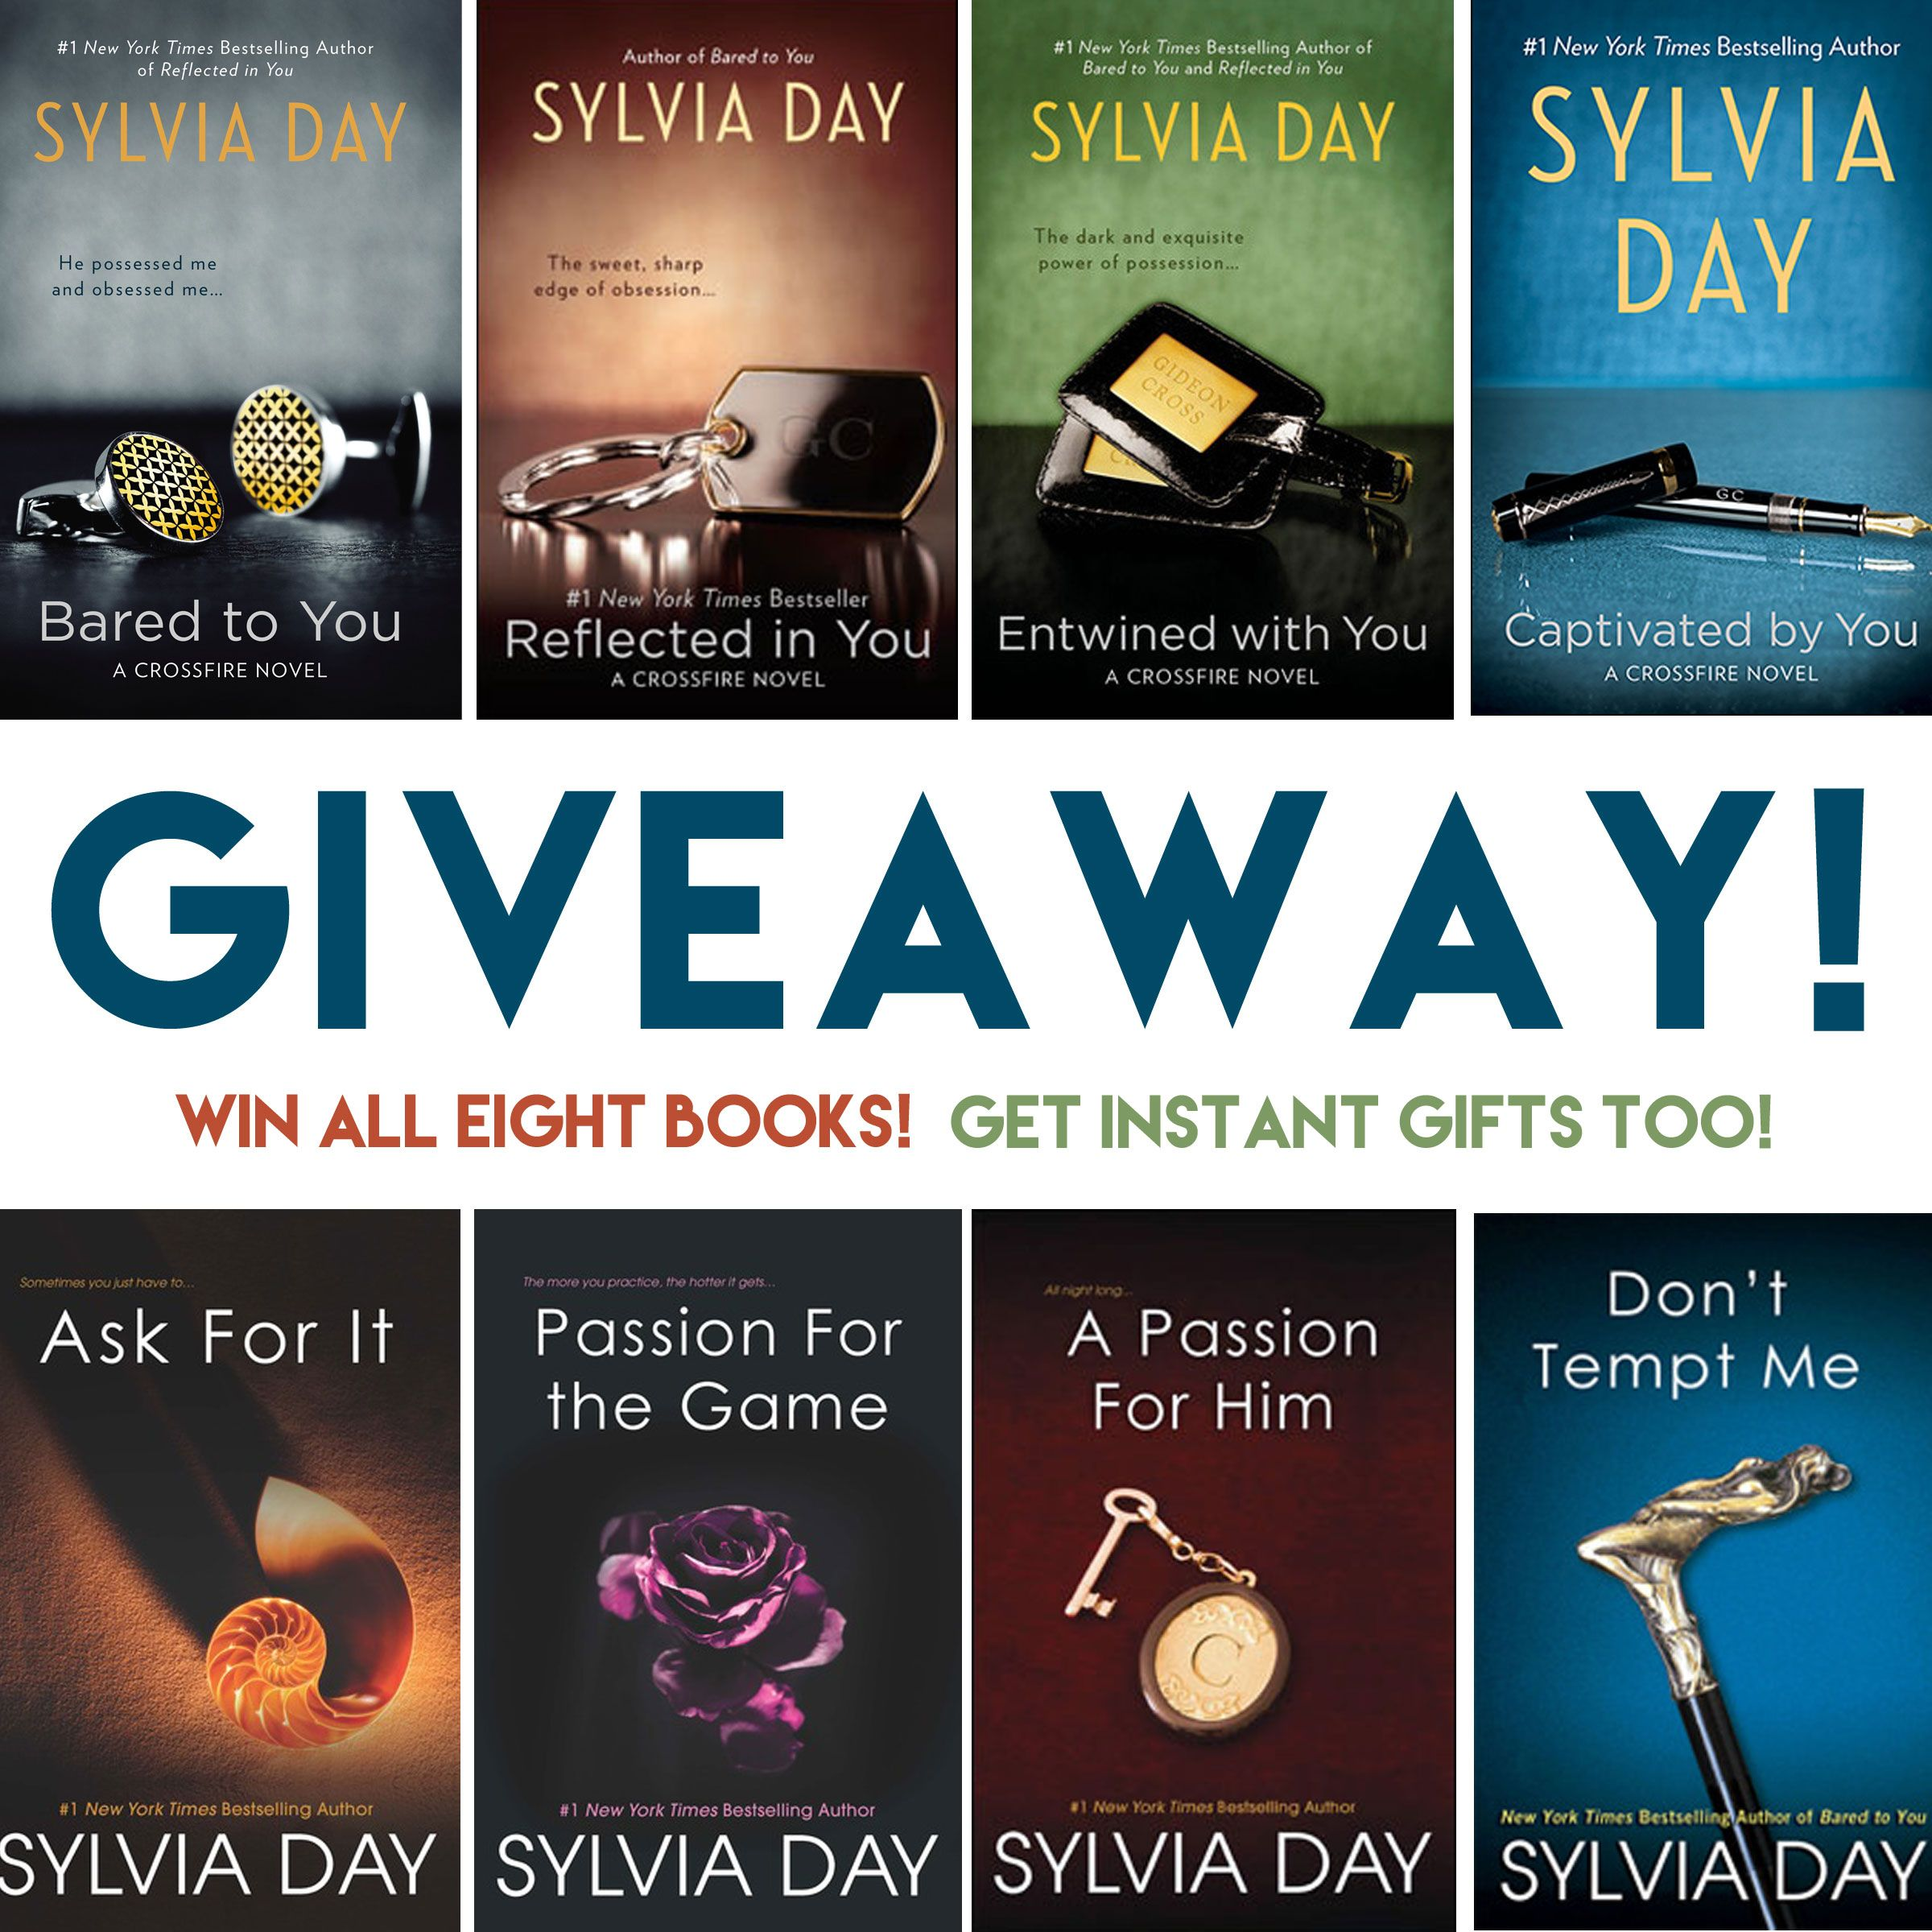 #giveaway: The Crossfire And Georgian Series By Sylvia Day (#win All Eight